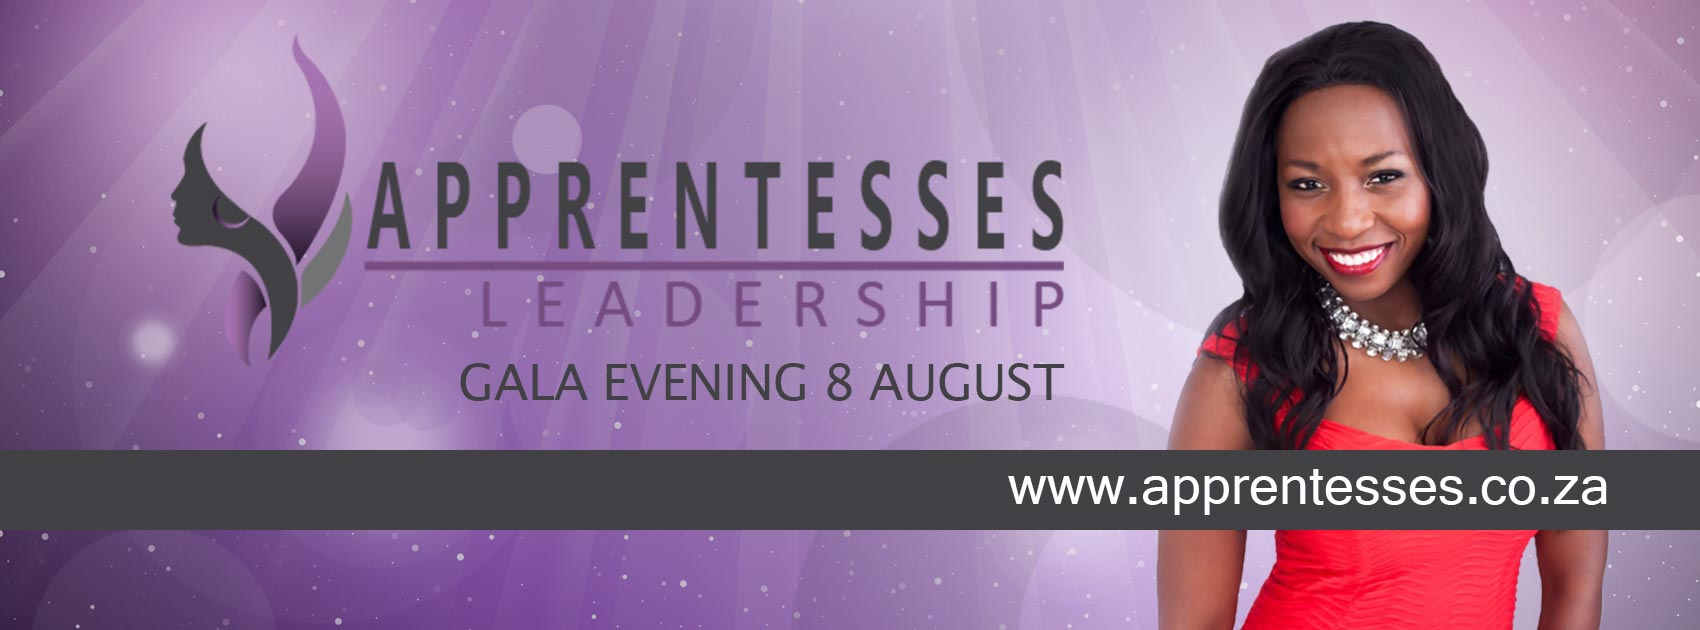 Peri-Peri-Creative-Apprentesses leadership Facebook Banner8